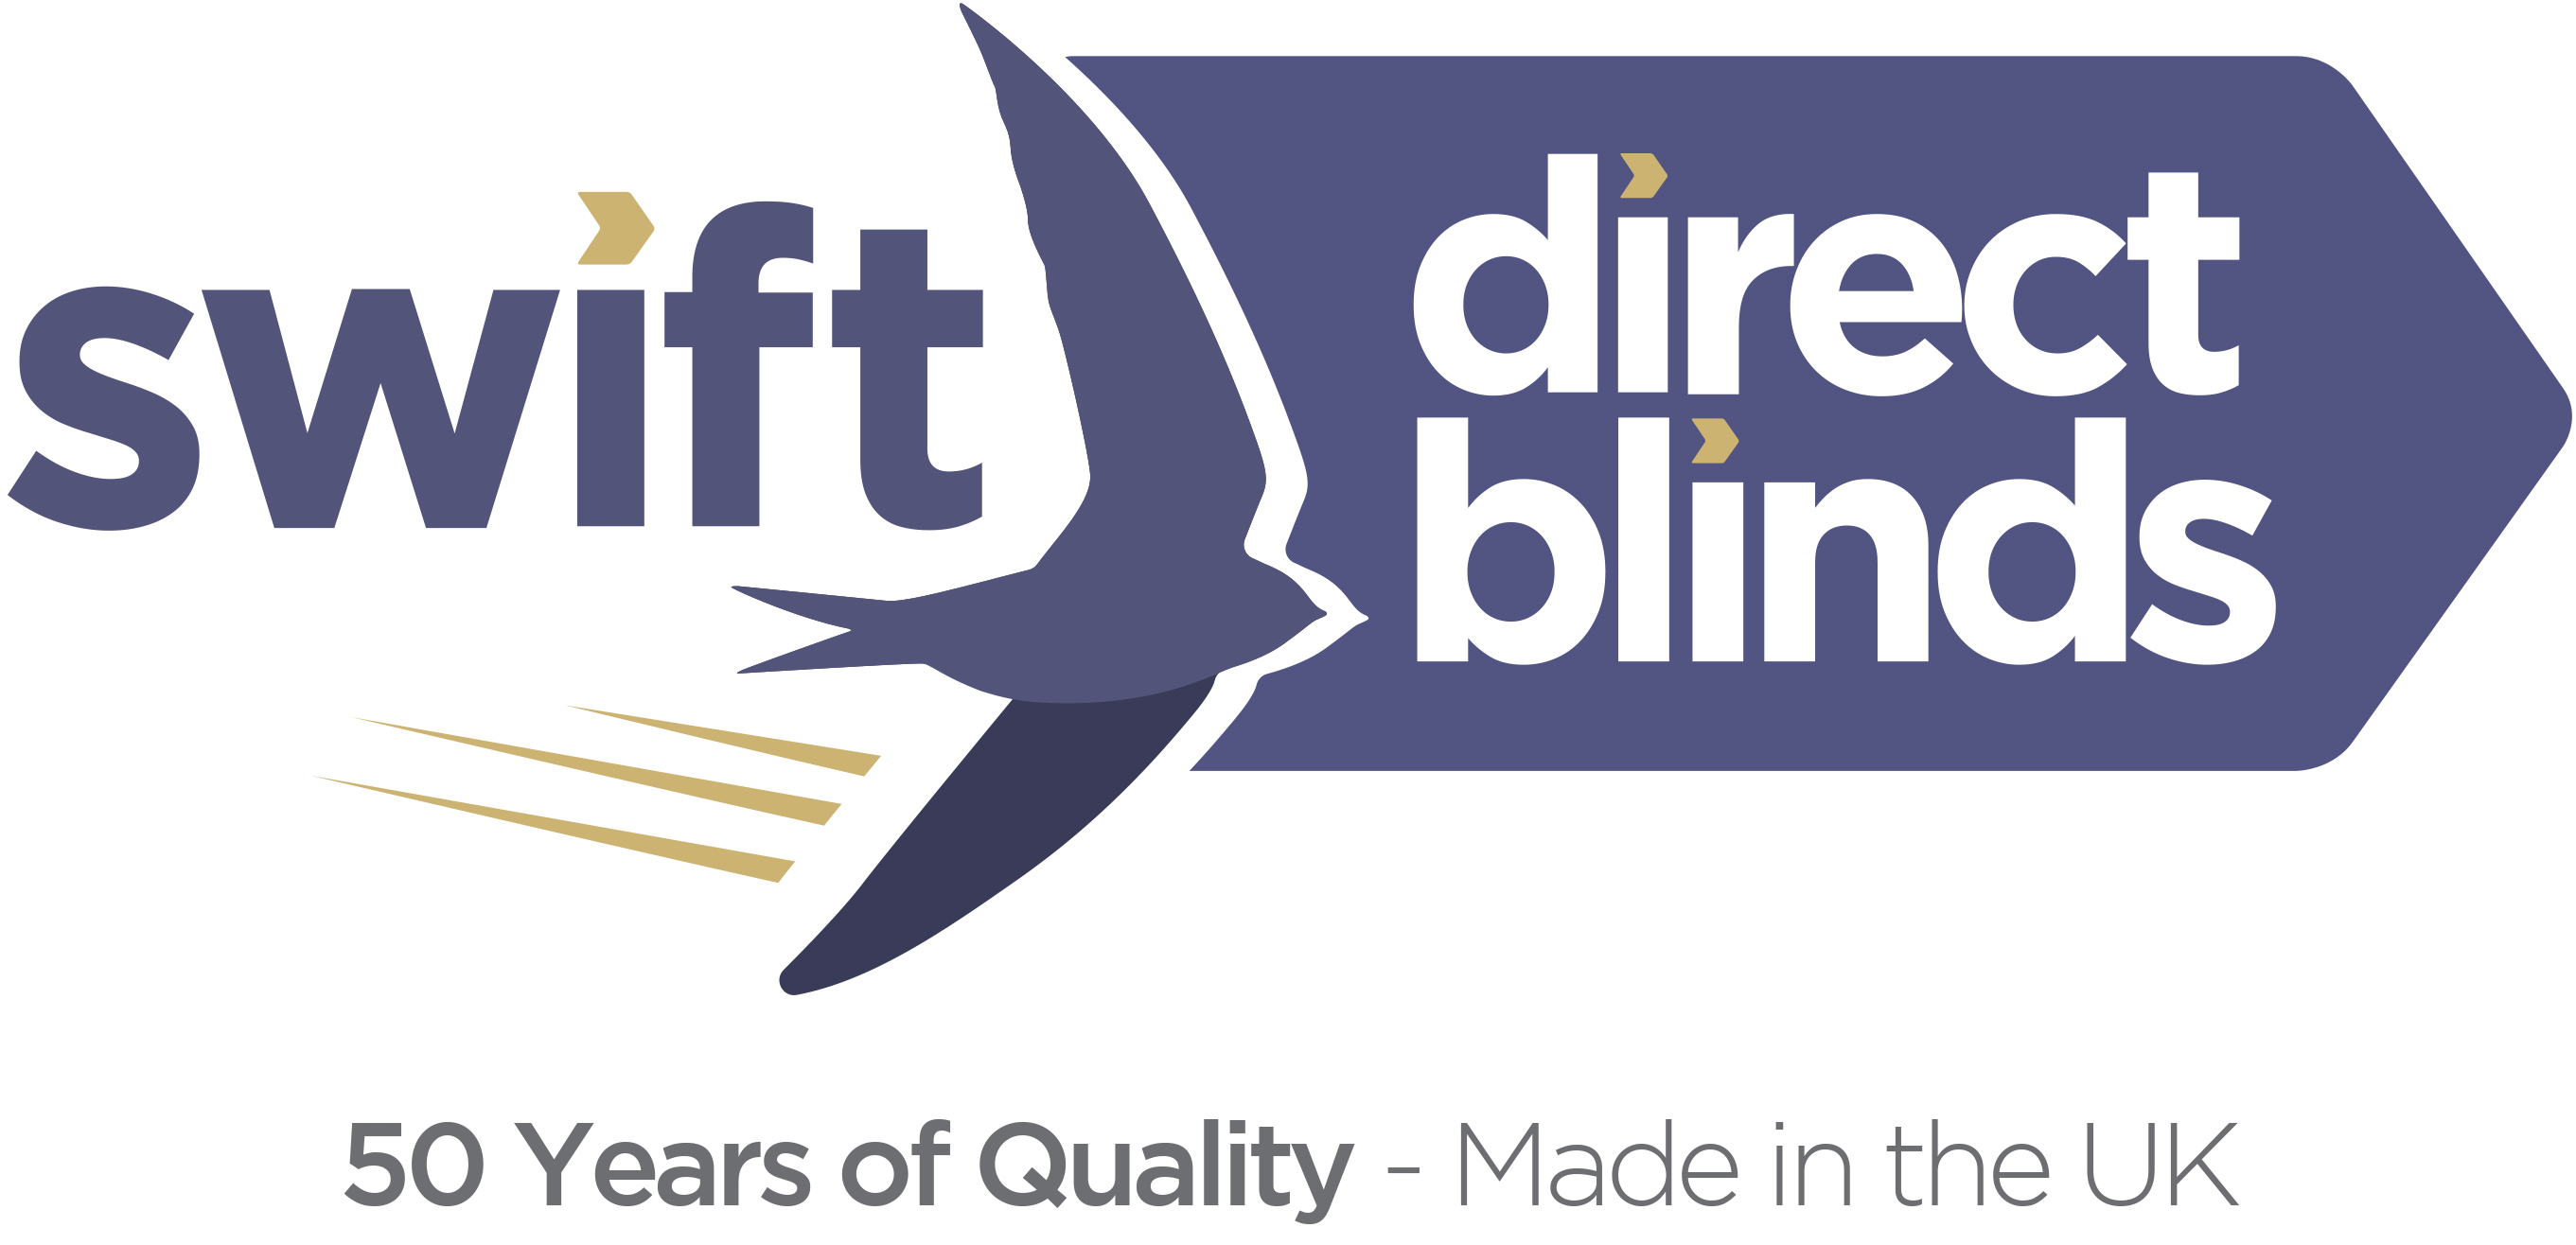 Swift Direct Blinds - Buy now, pay later with Klarna